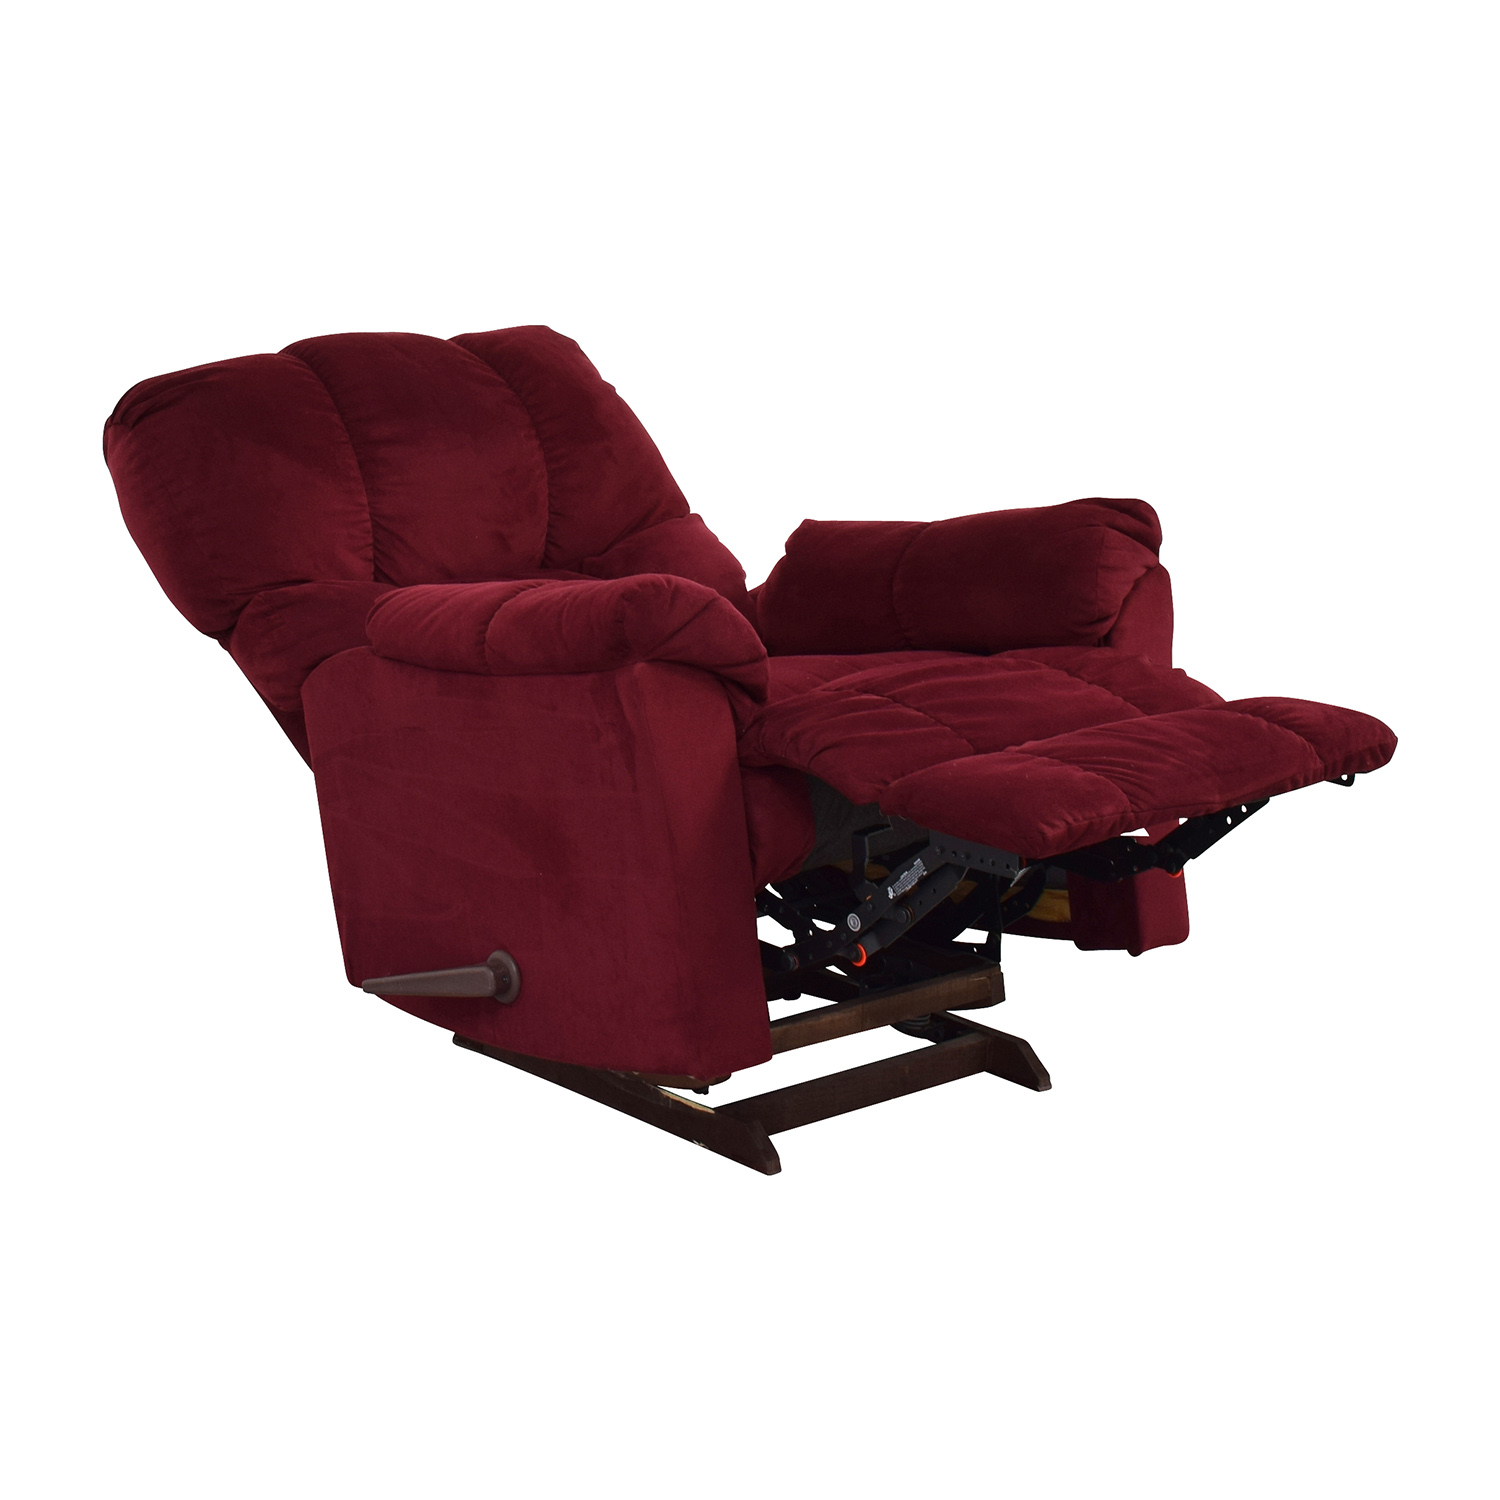 Macys Macys Red Recliner Arm Chair discount